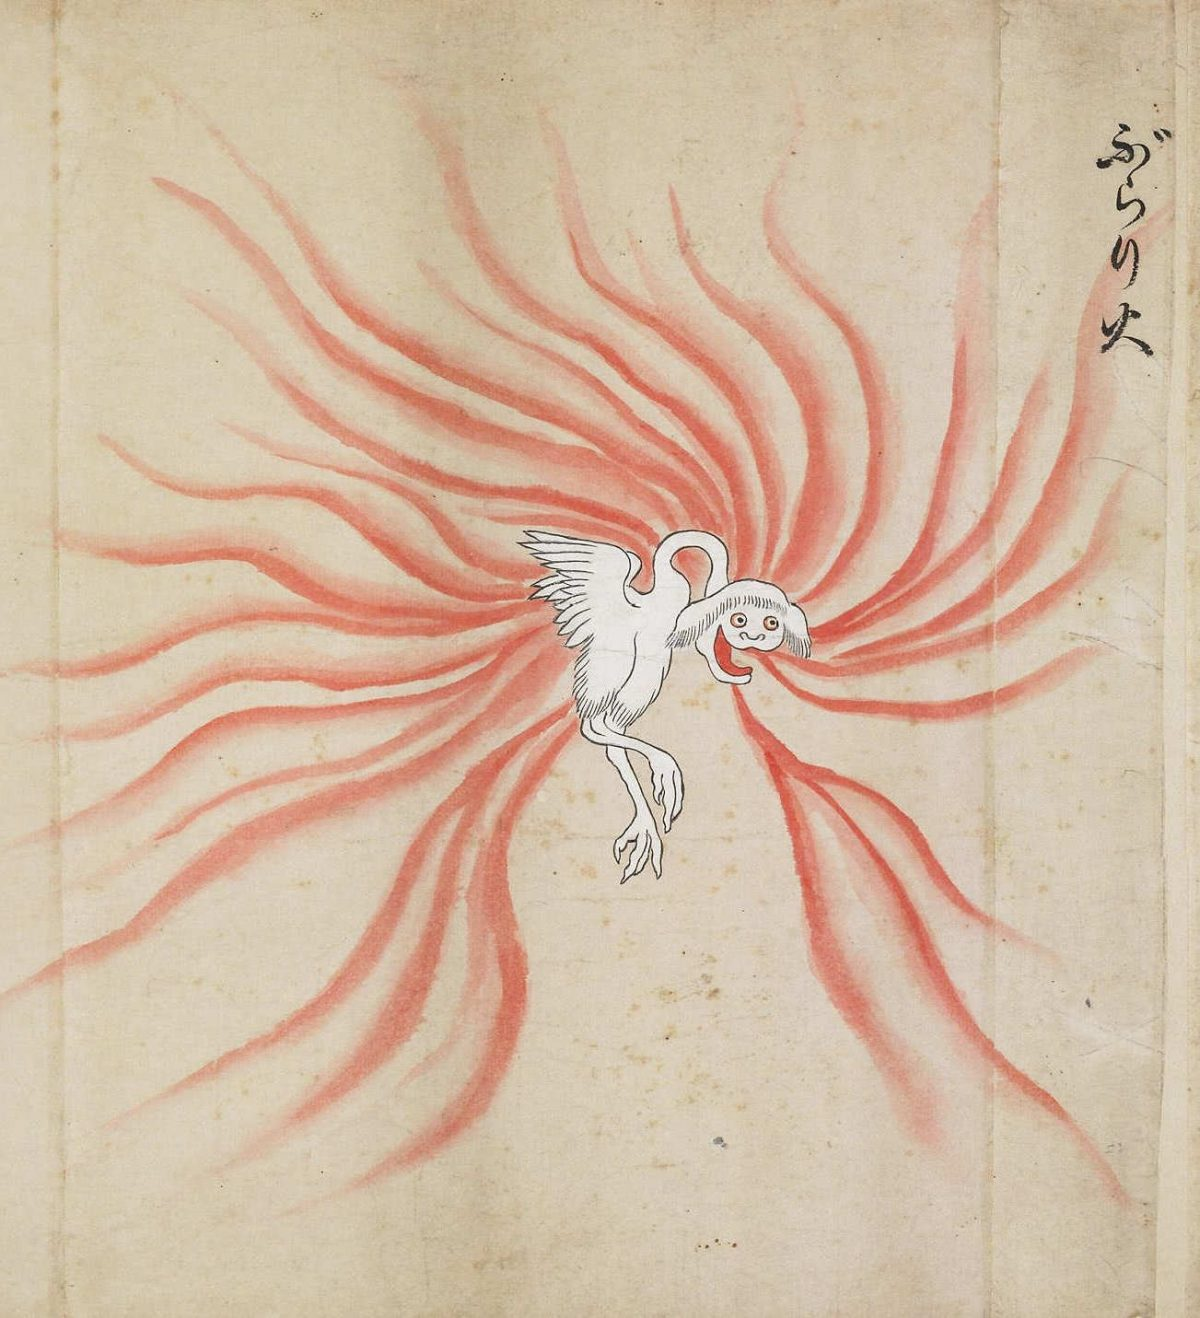 Buraribi (ぶらり火) is a white, bird-like creature surrounded by ghostly flames.jpg